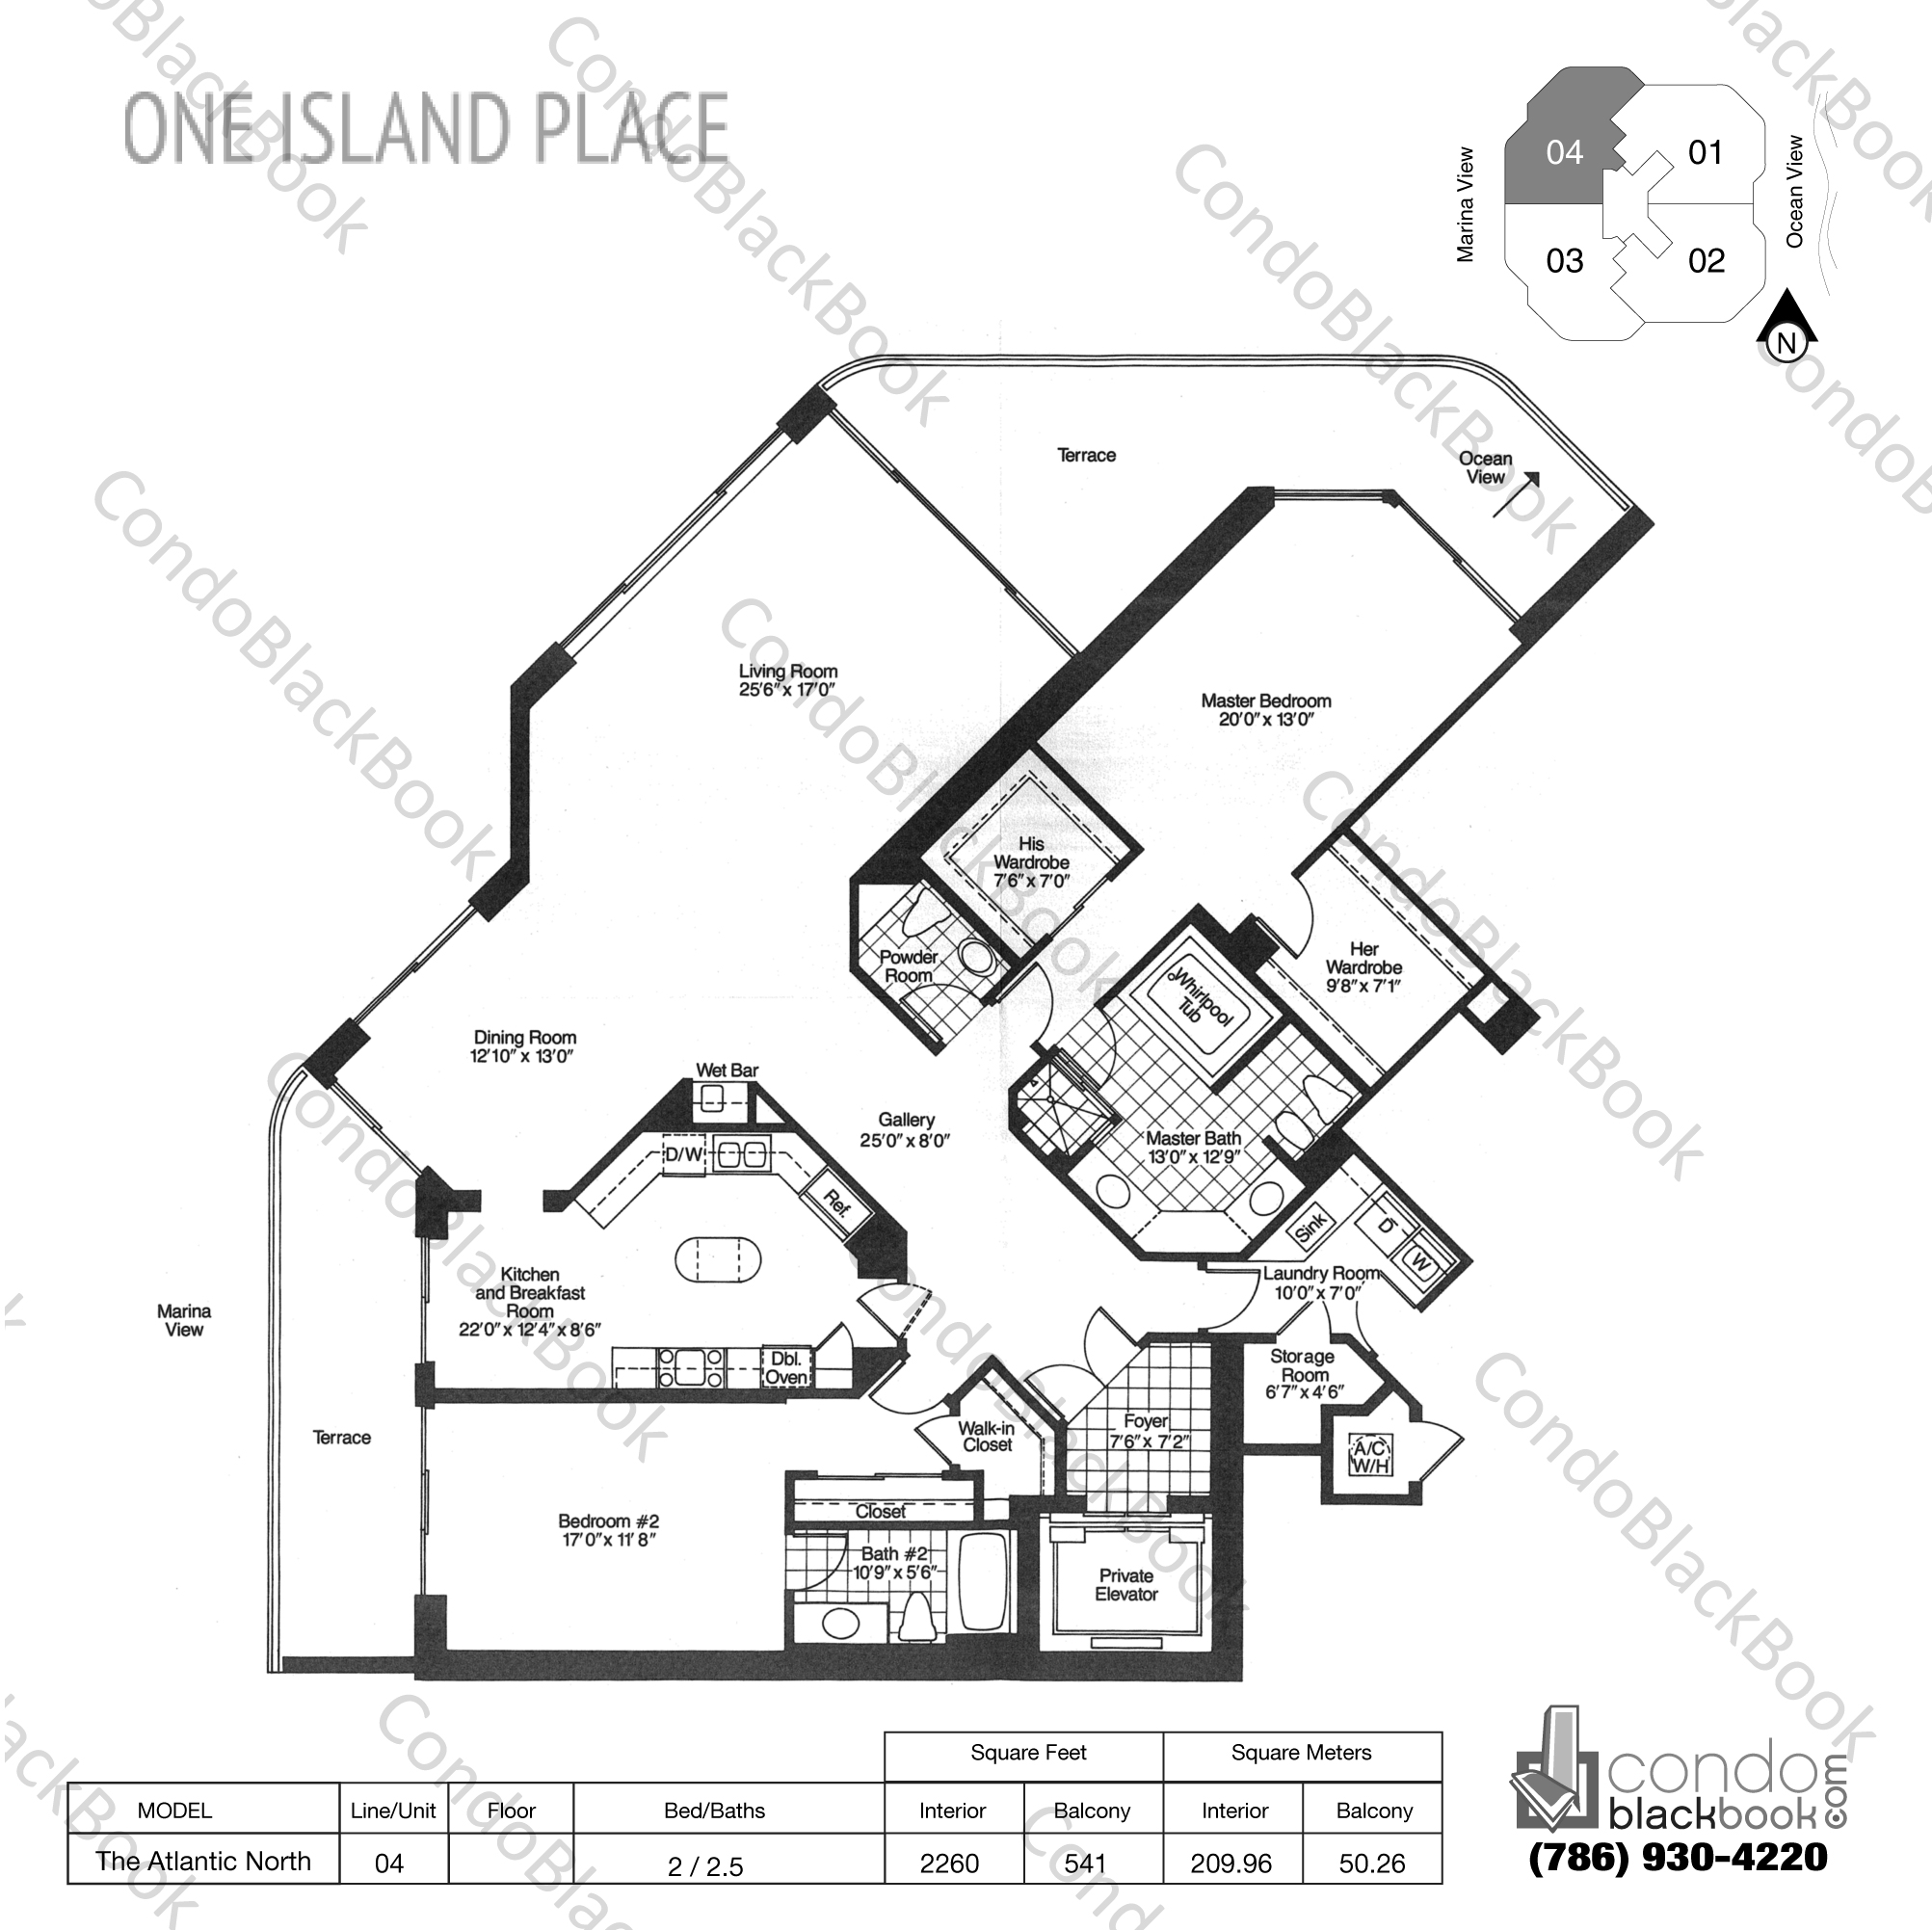 Floor plan for One Island Place Aventura, model The Atlantic North, line 04, 2 / 2.5 bedrooms, 2260 sq ft